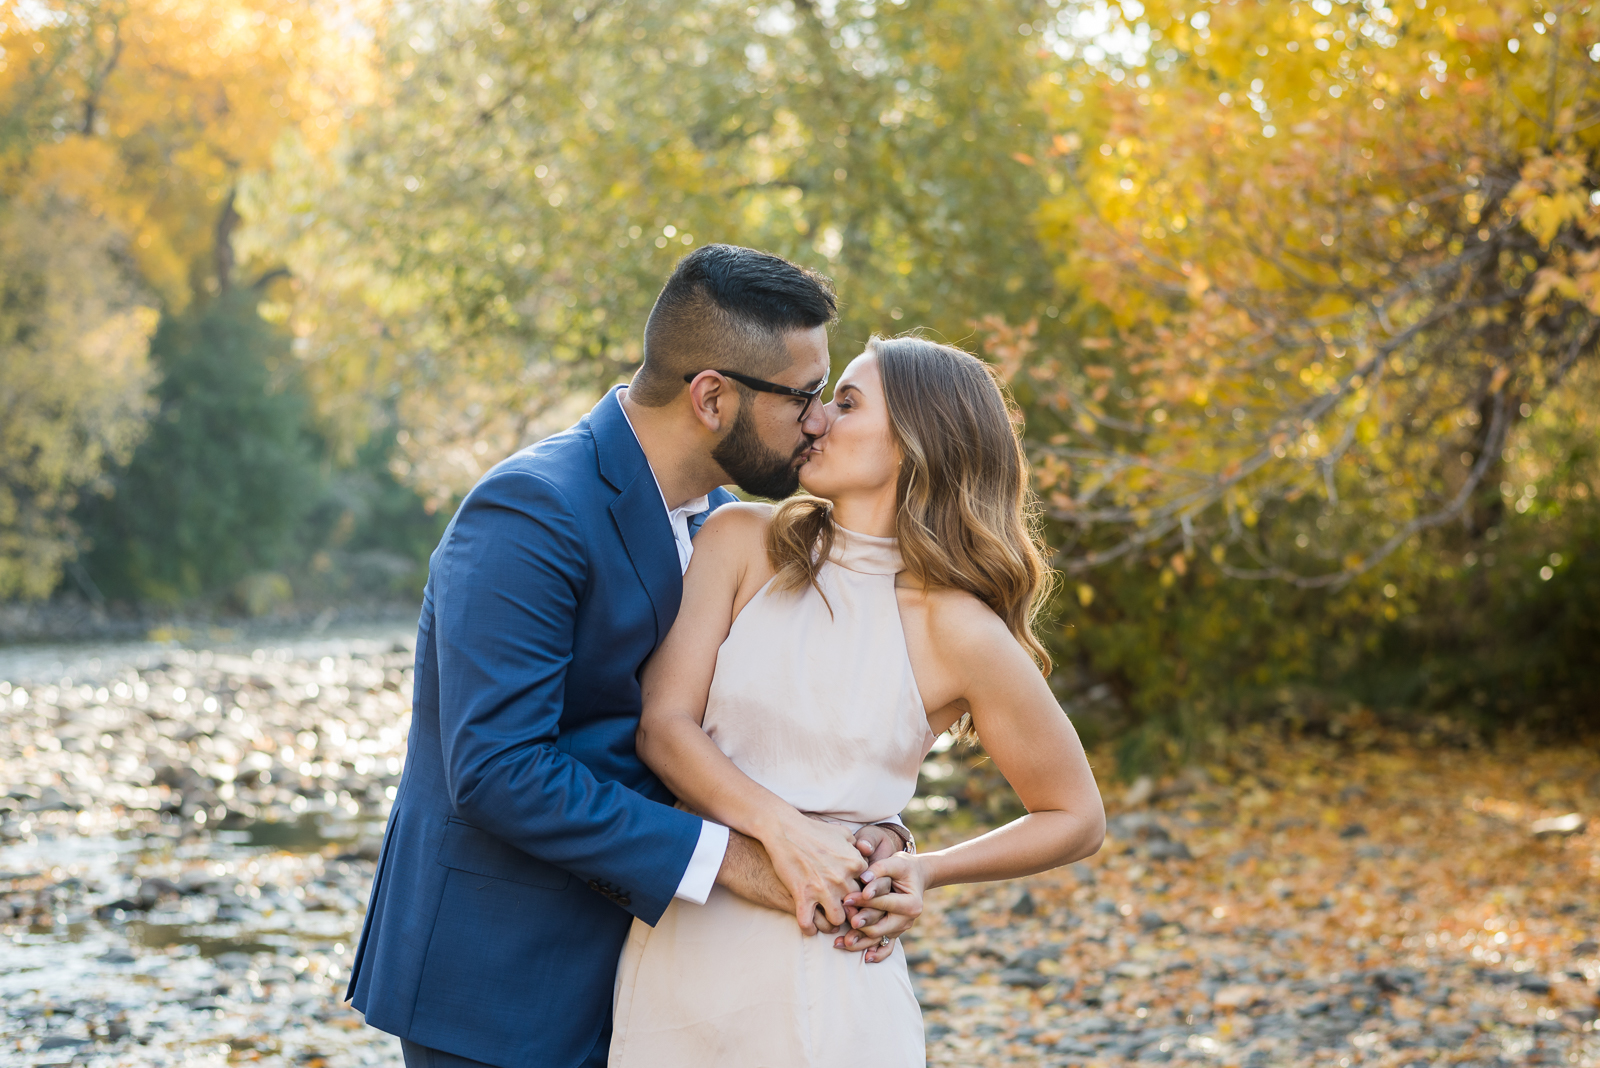 Maureen & Andres | Engagement Photo | Clear Creek Trail | From the Hip Photo